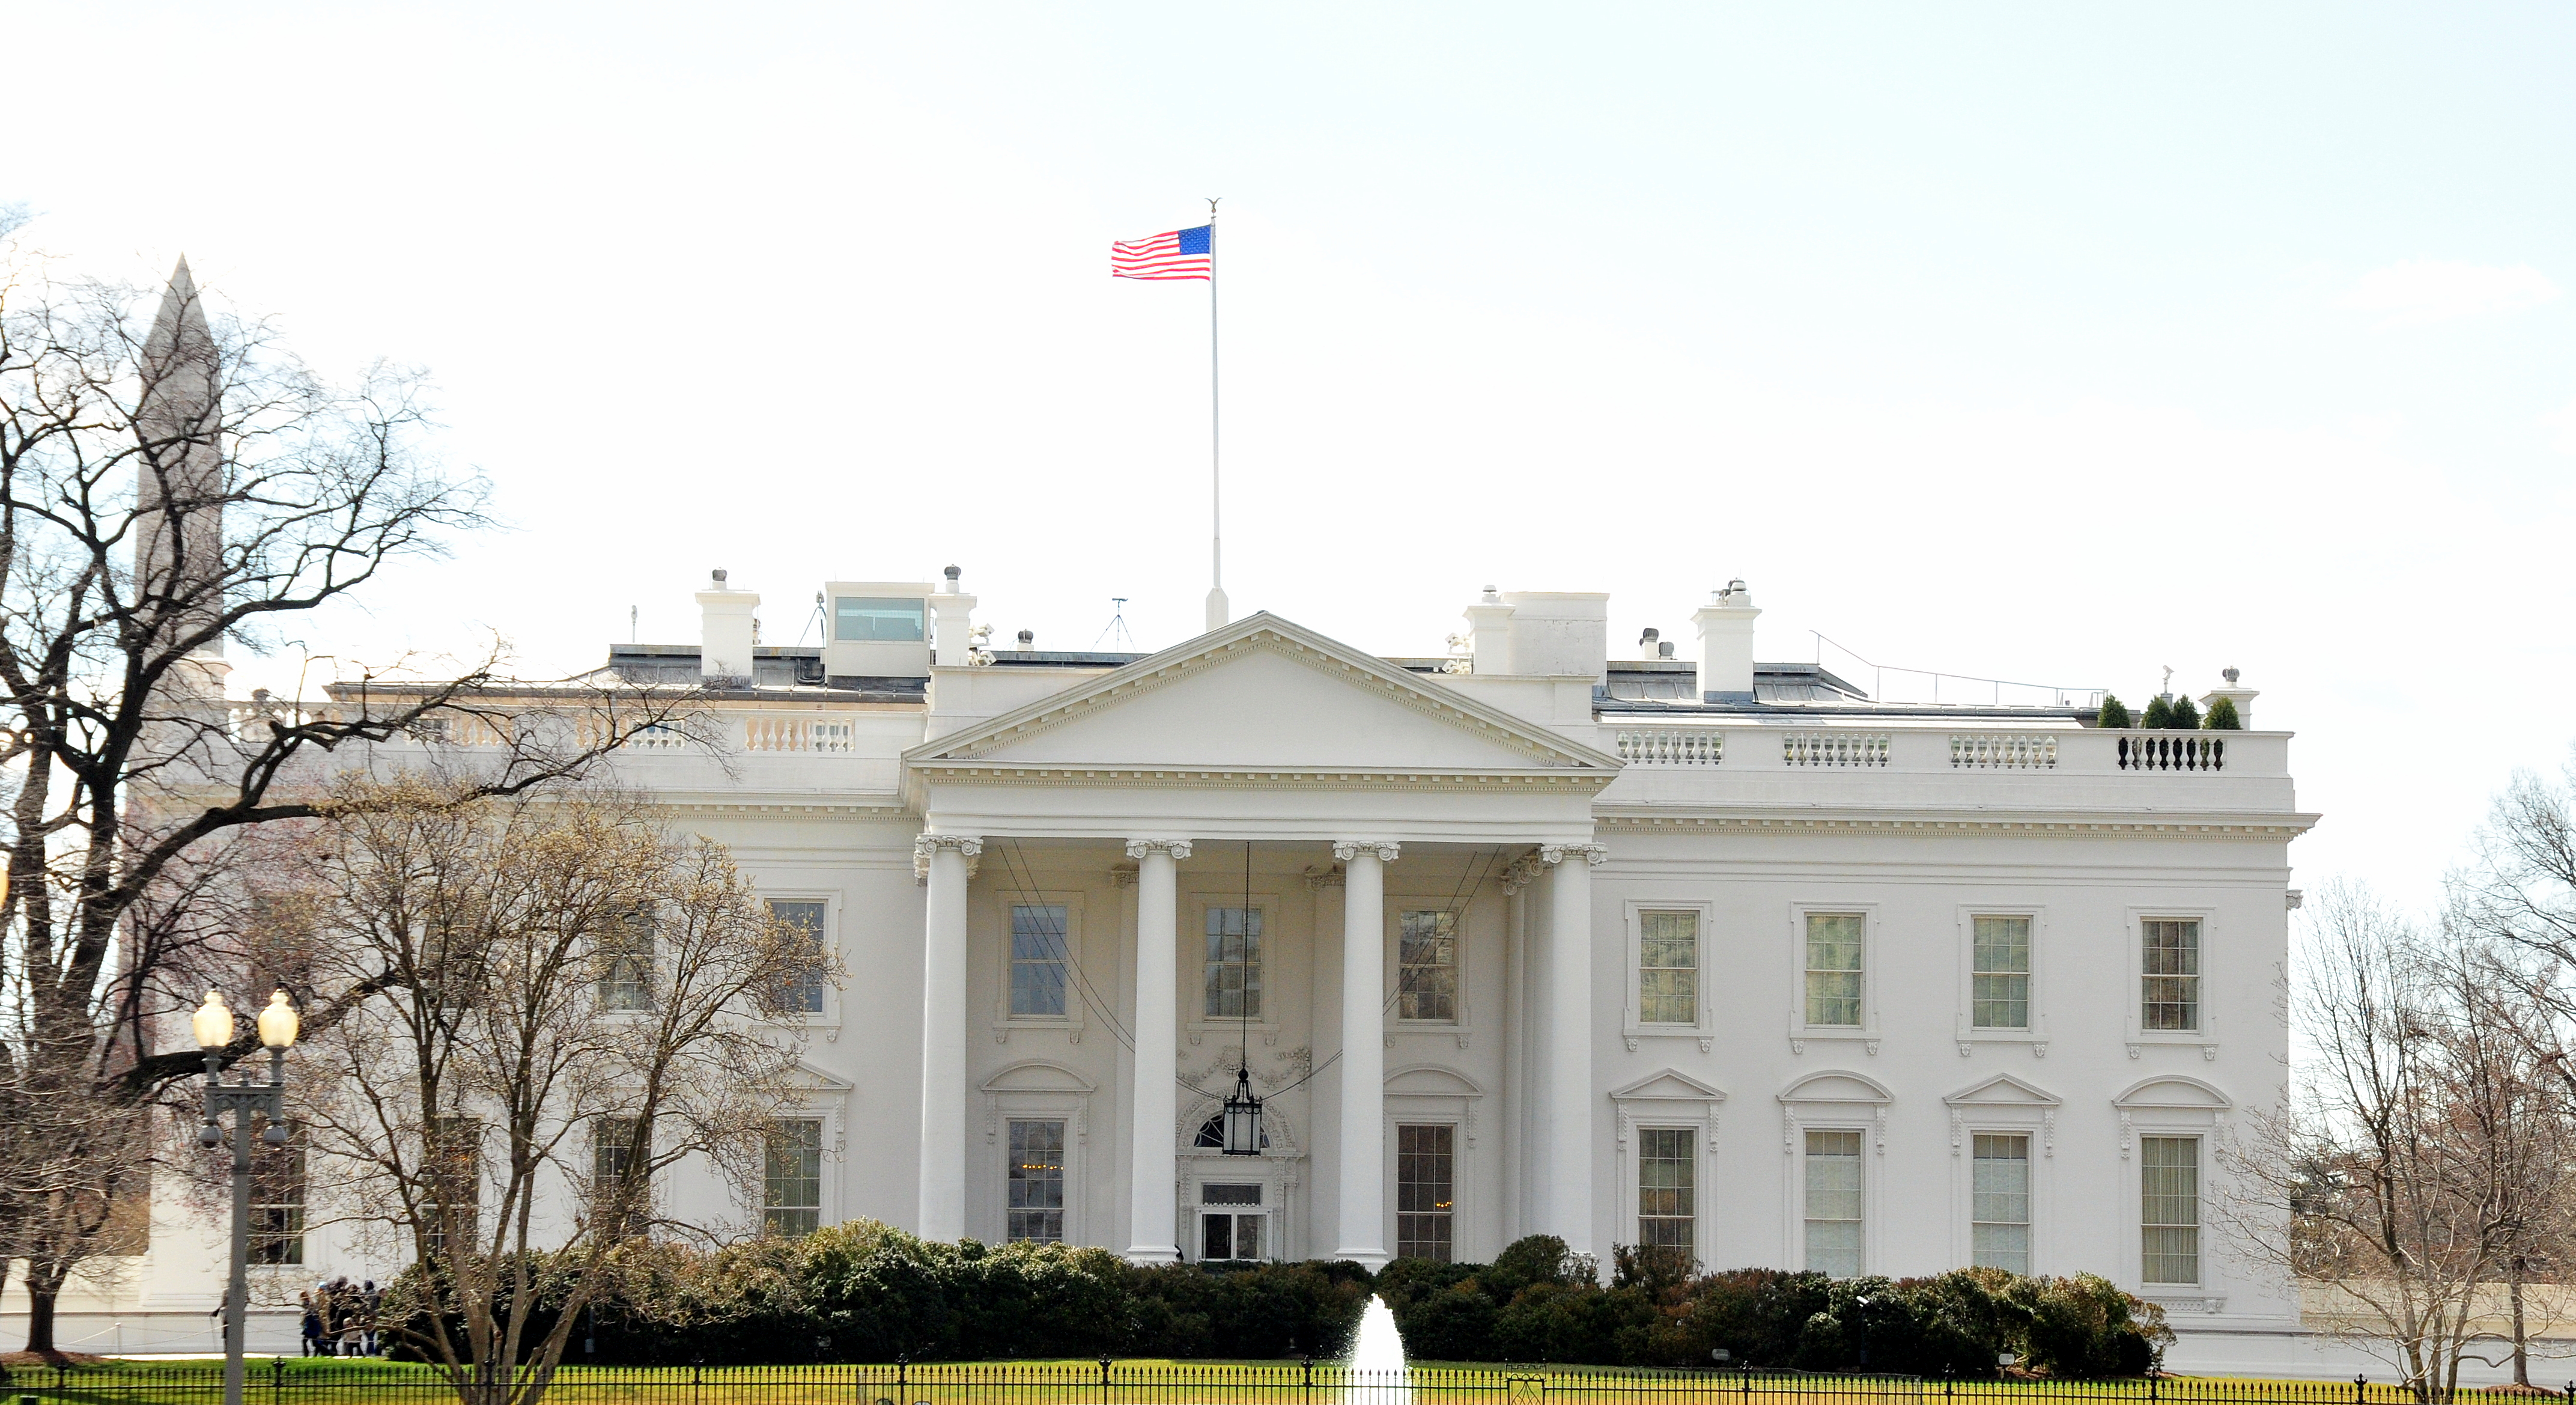 Image of the White House with the American flag on top.